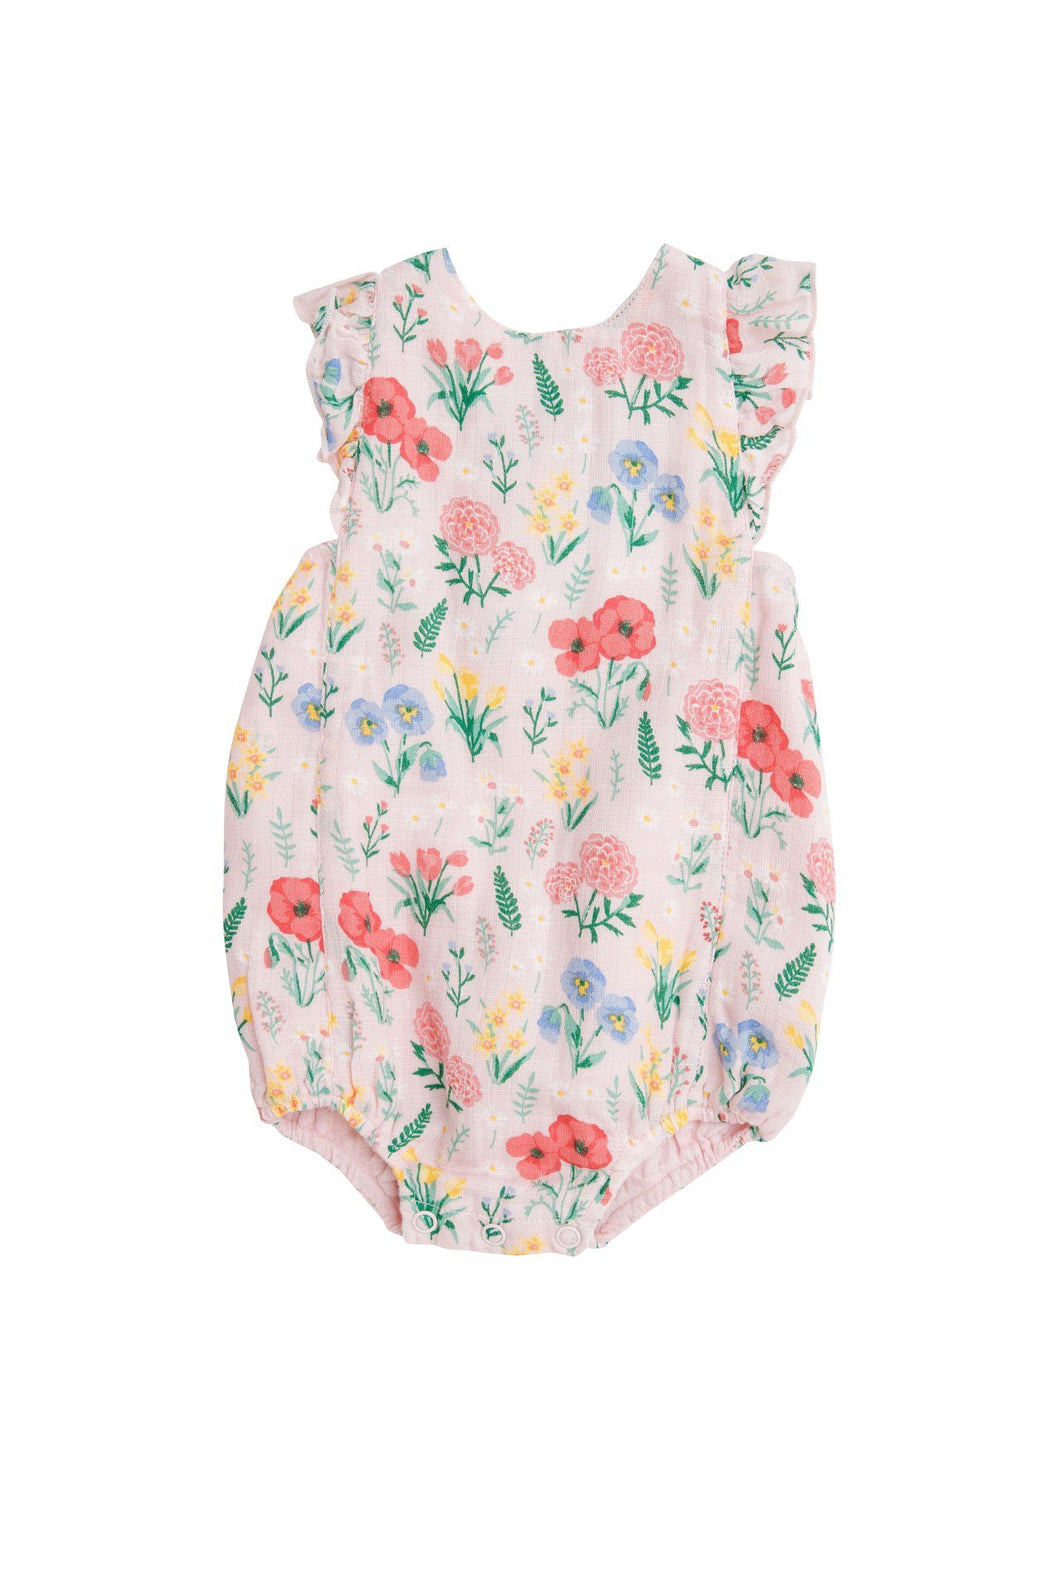 Summer Floral Sunsuit Pink